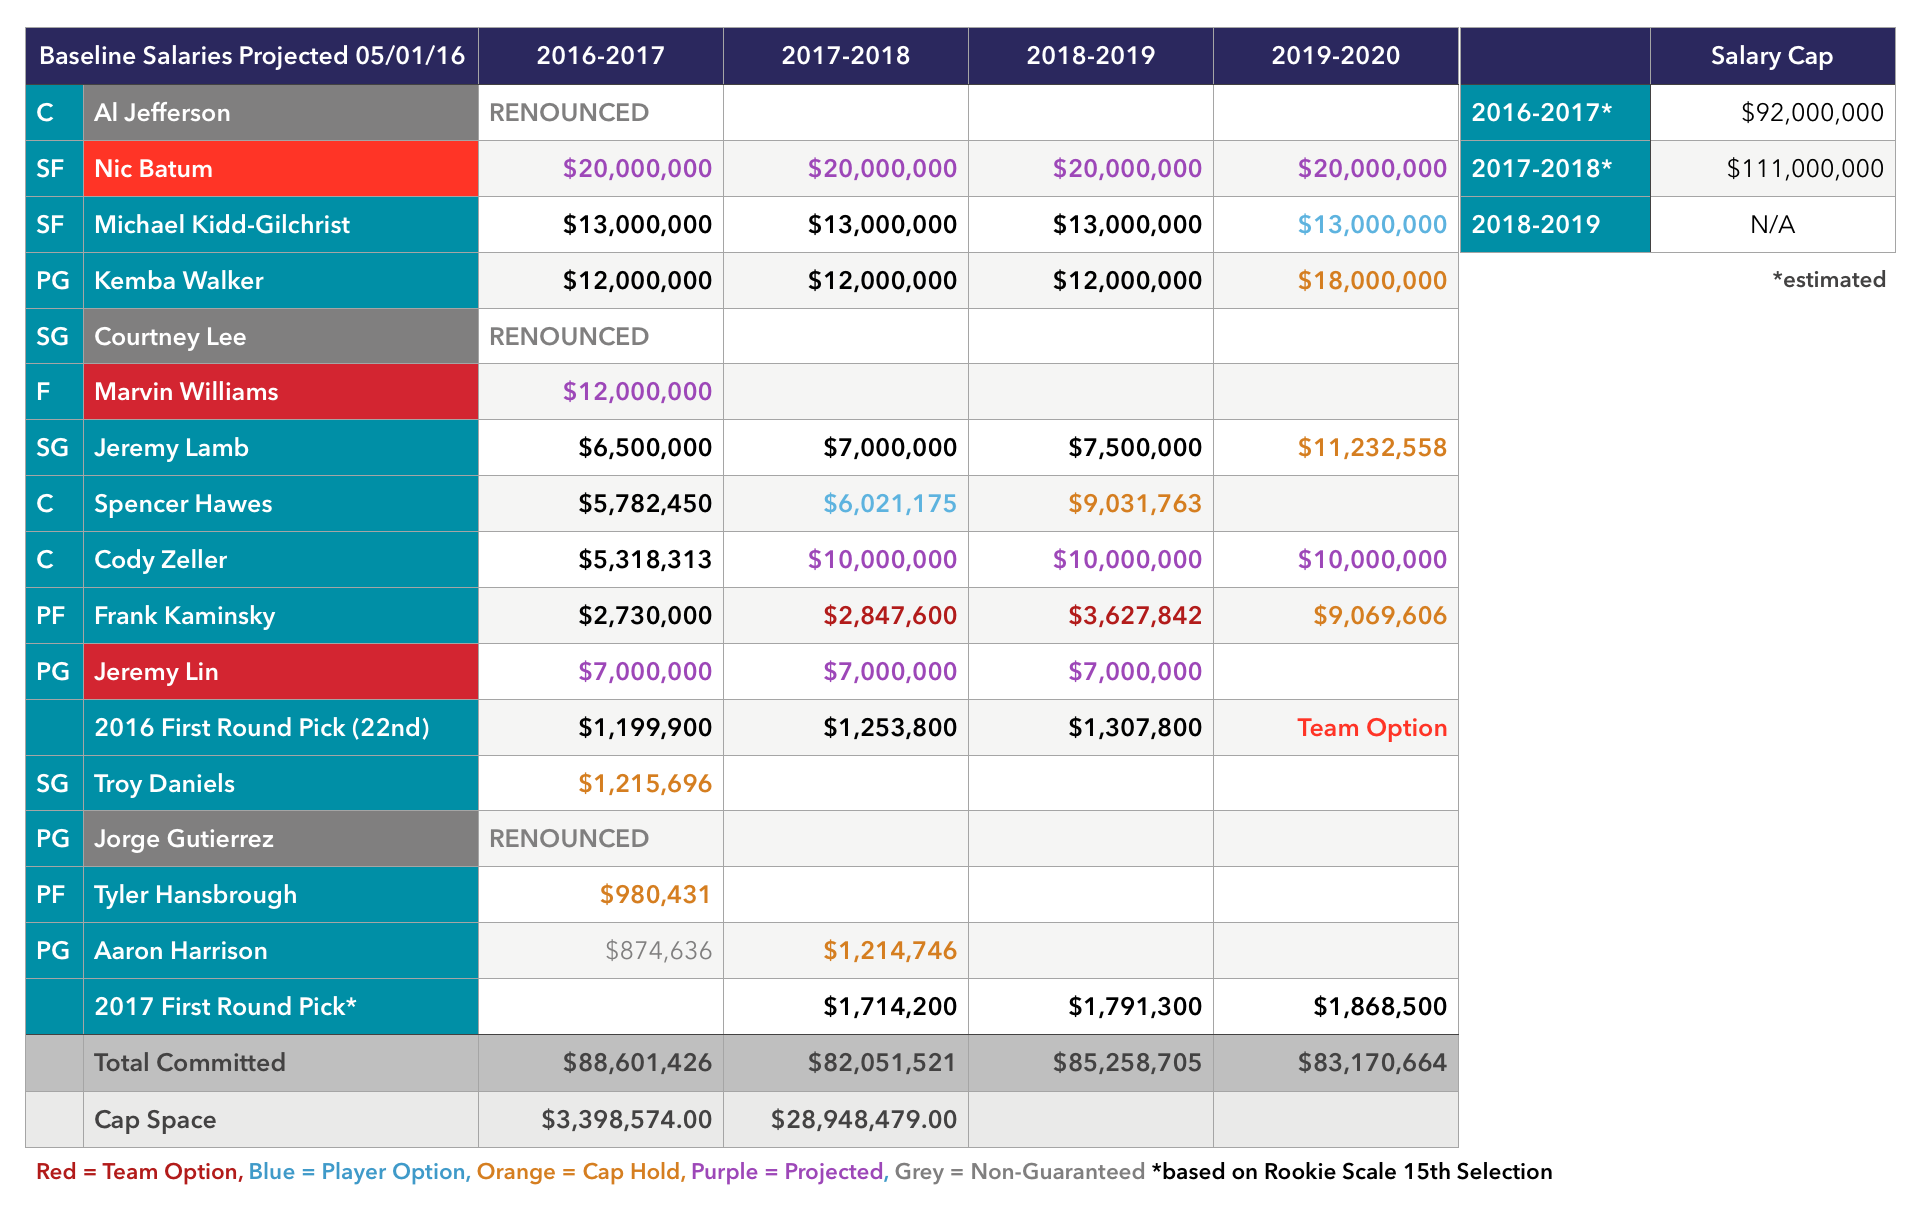 Baseline_Salaries_05_2016_Projected_UPDATED